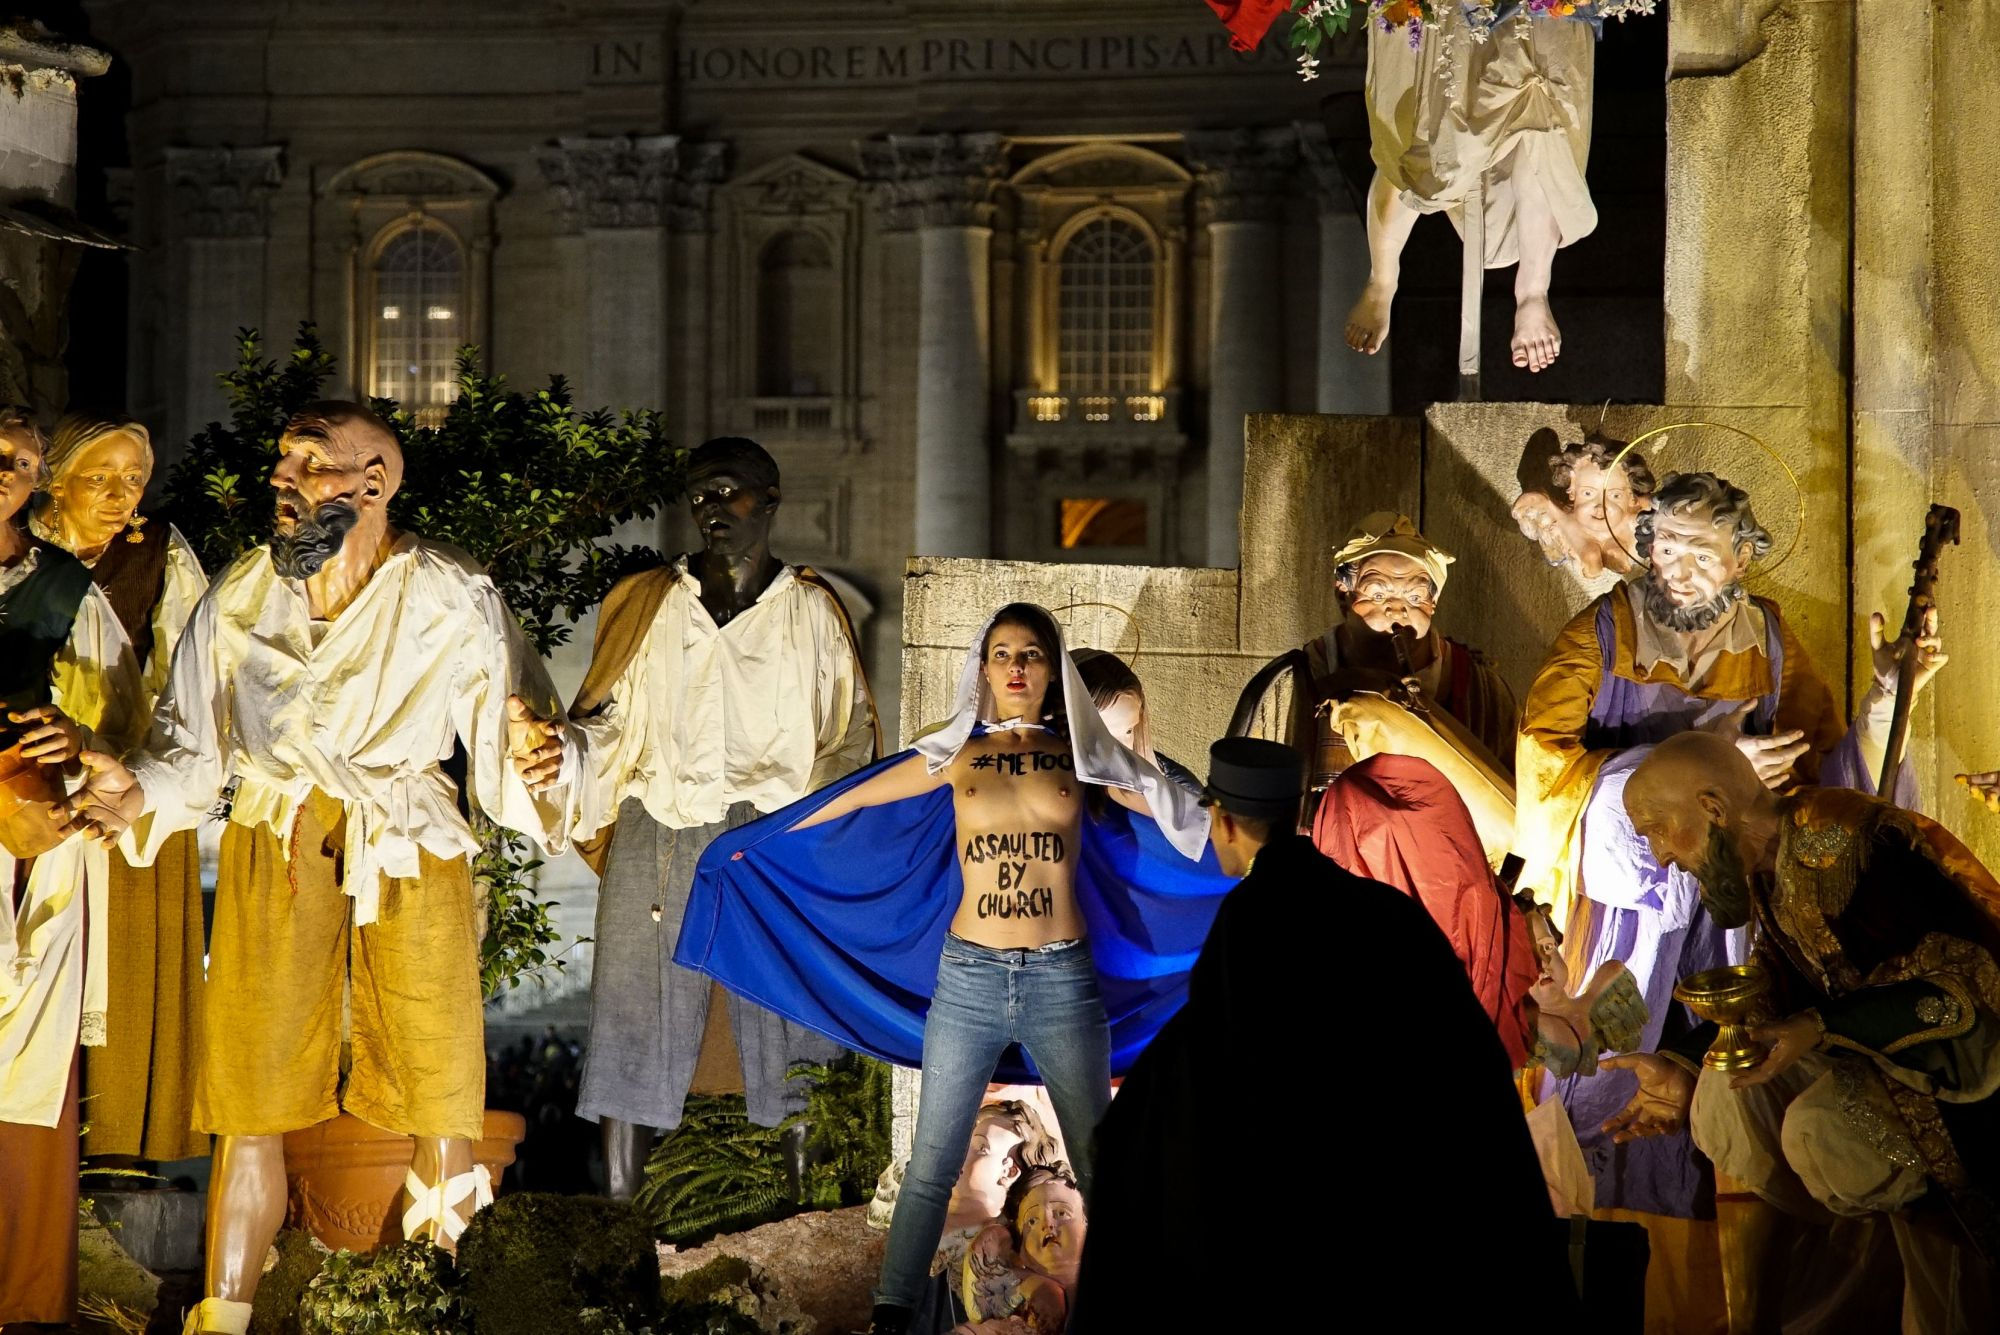 A handout picture taken Sunday and released on Monday by the Femen group shows a police officer running toward a Femen activist standing topless in front of the Nativity scene in Saint Peter's square at the Vatican. | FEMEN / VIA AFP-JIJI